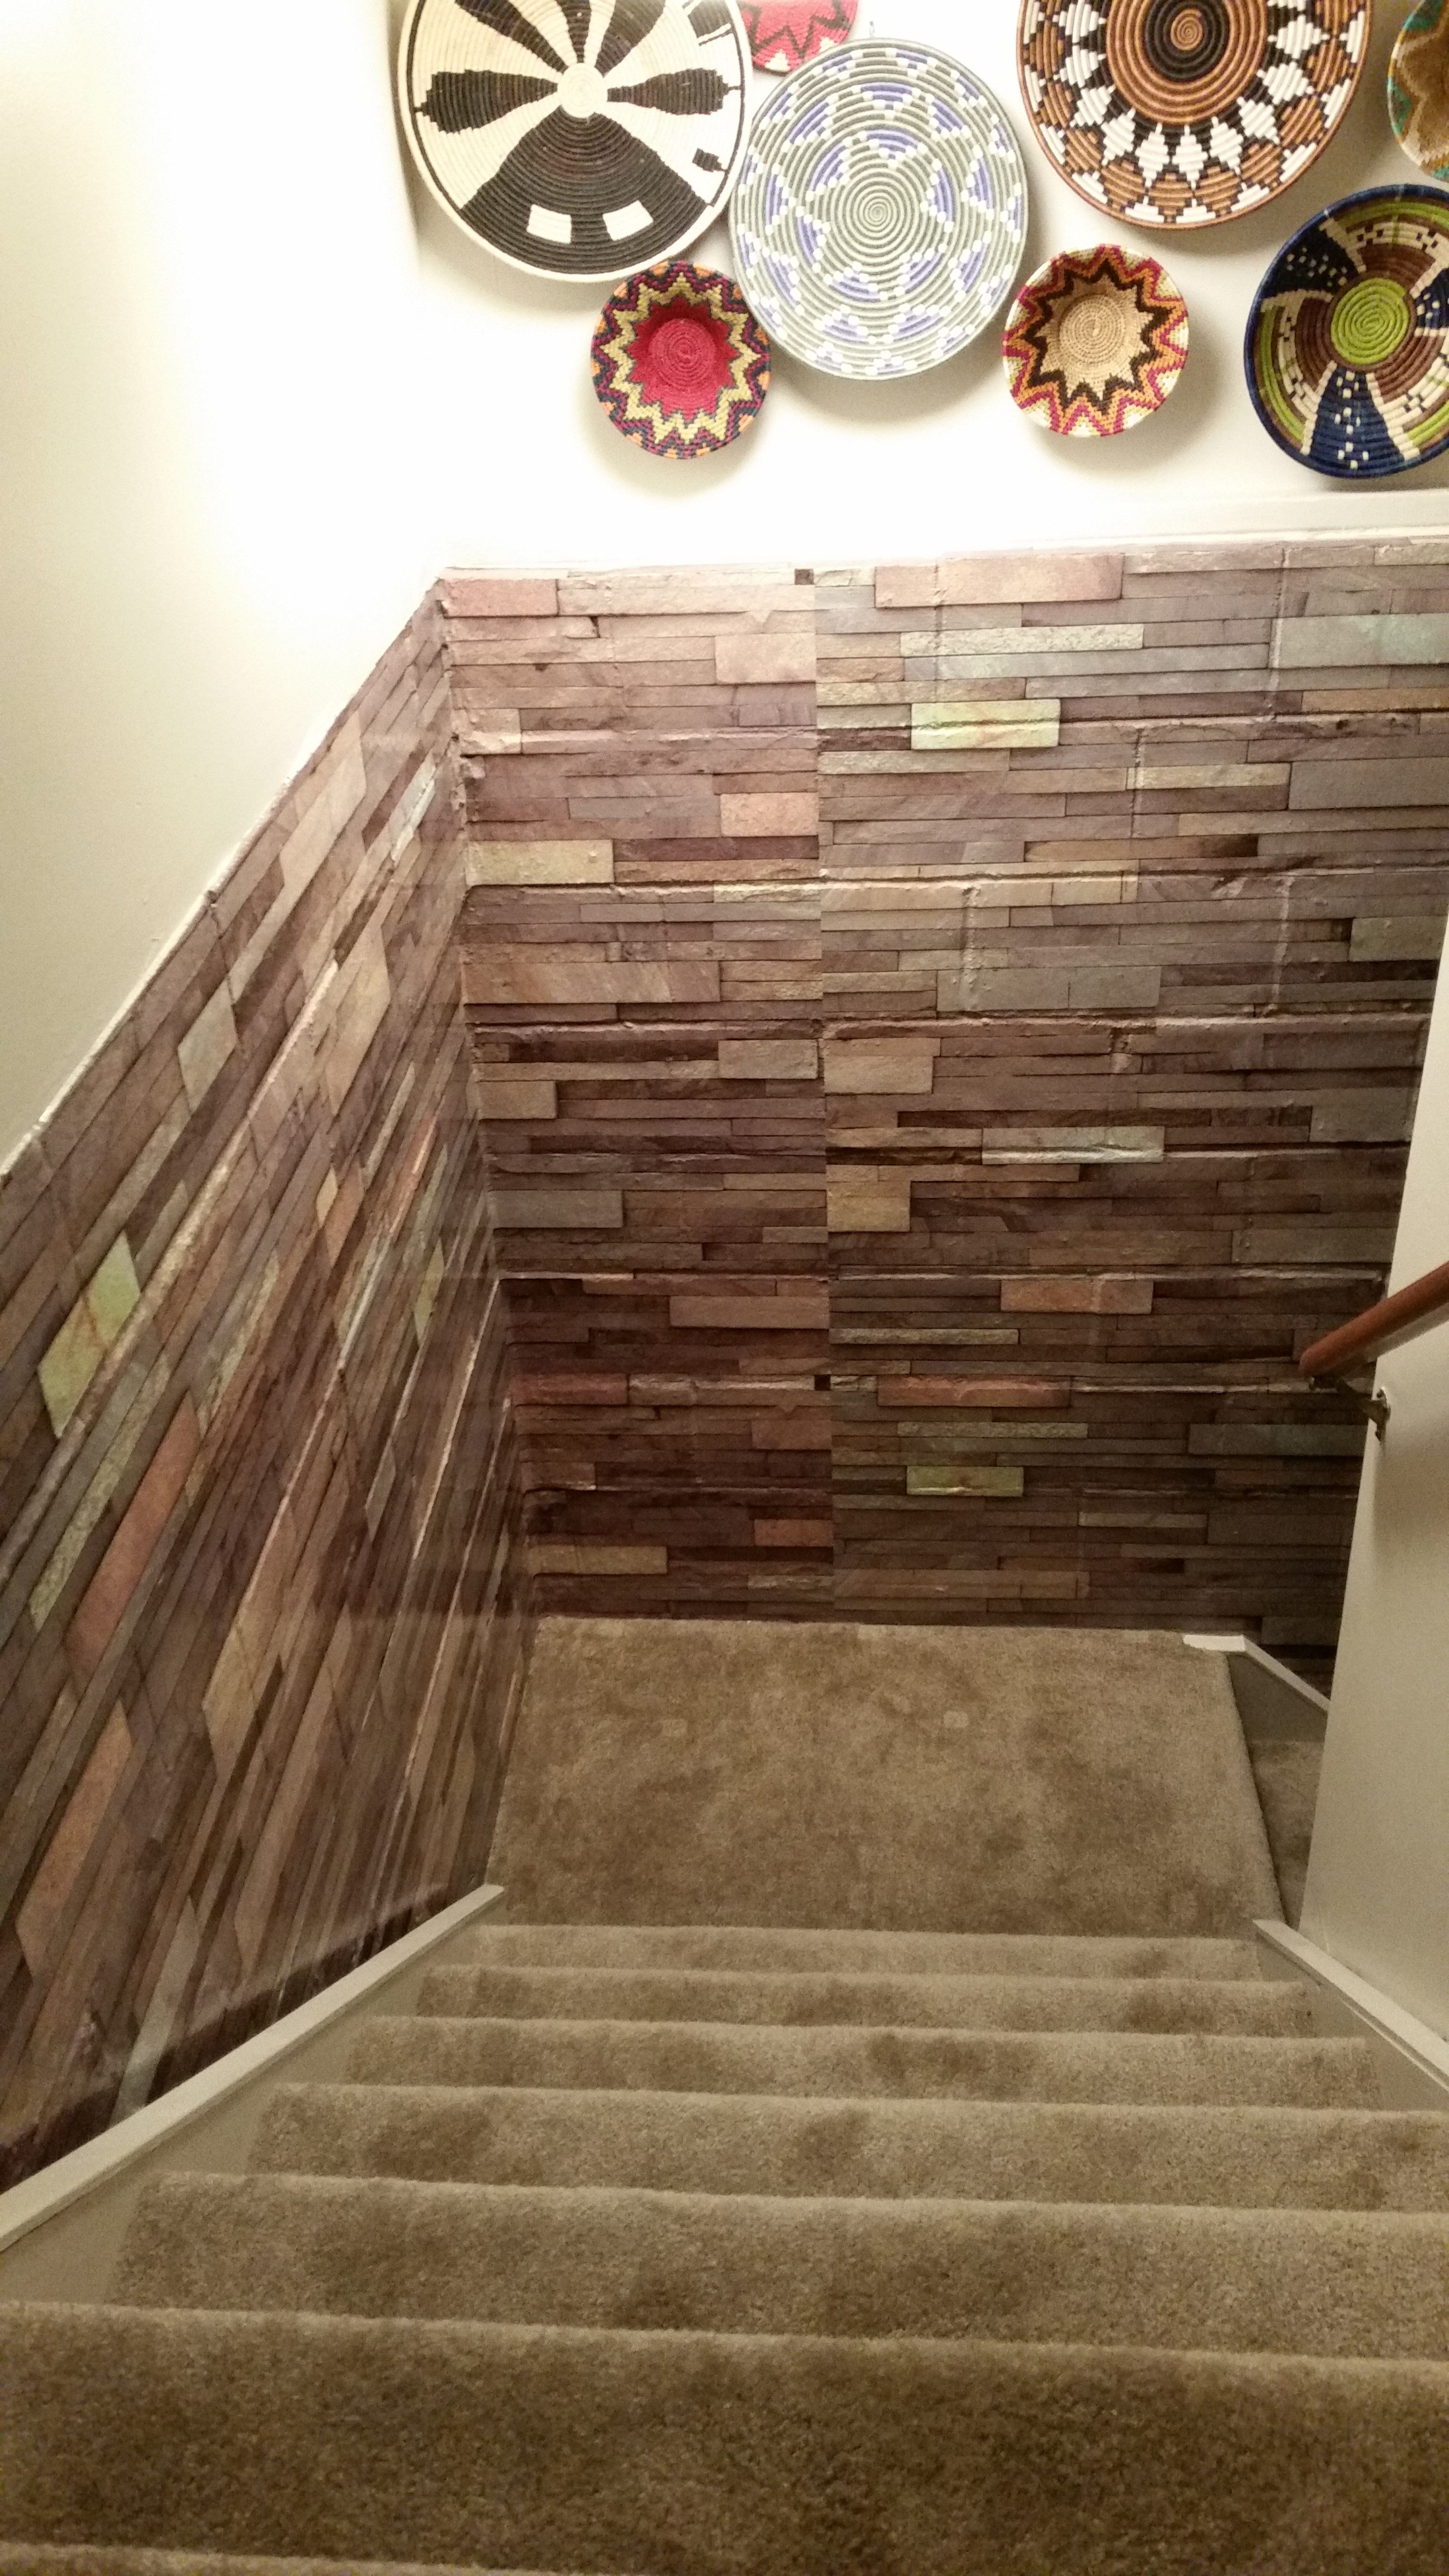 """Have an ugly concrete wall you hate..but you don't want to spend the money to have a total room remodel? We did too. We did a """"wall wrap"""". We found an image of stacked stone. We printed, laminated & applied the panels over our concrete wall. Now our laundry room is not so creepy and we think the wrap looks pretty real!"""